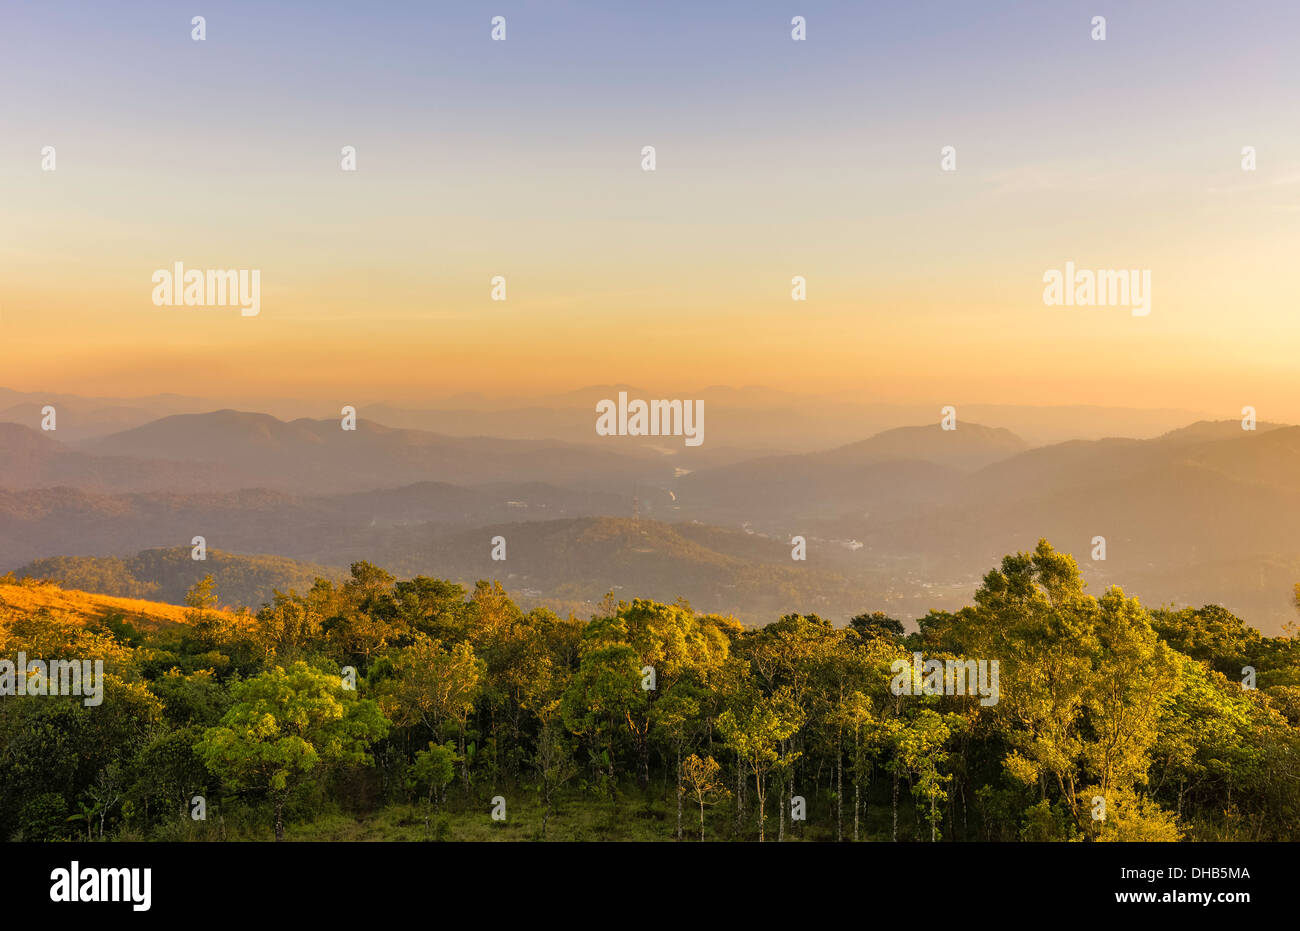 The cardamom Hills at sunset and the lake on the horizon at Periyar wildlife sanctuary in Kerala, India. - Stock Image